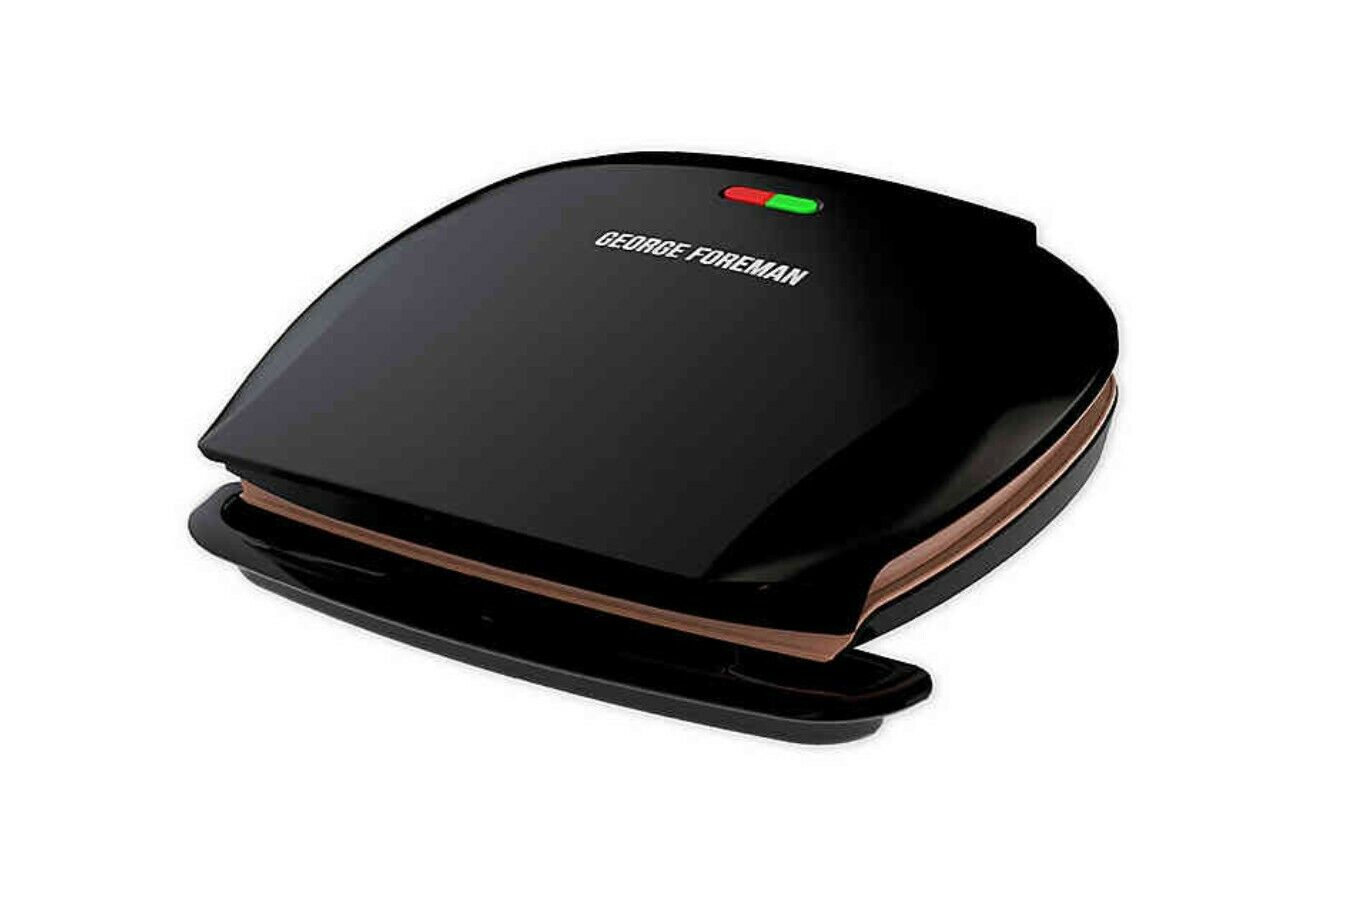 George Foreman GRP4B Next Grilleration 72 Square Inch Black